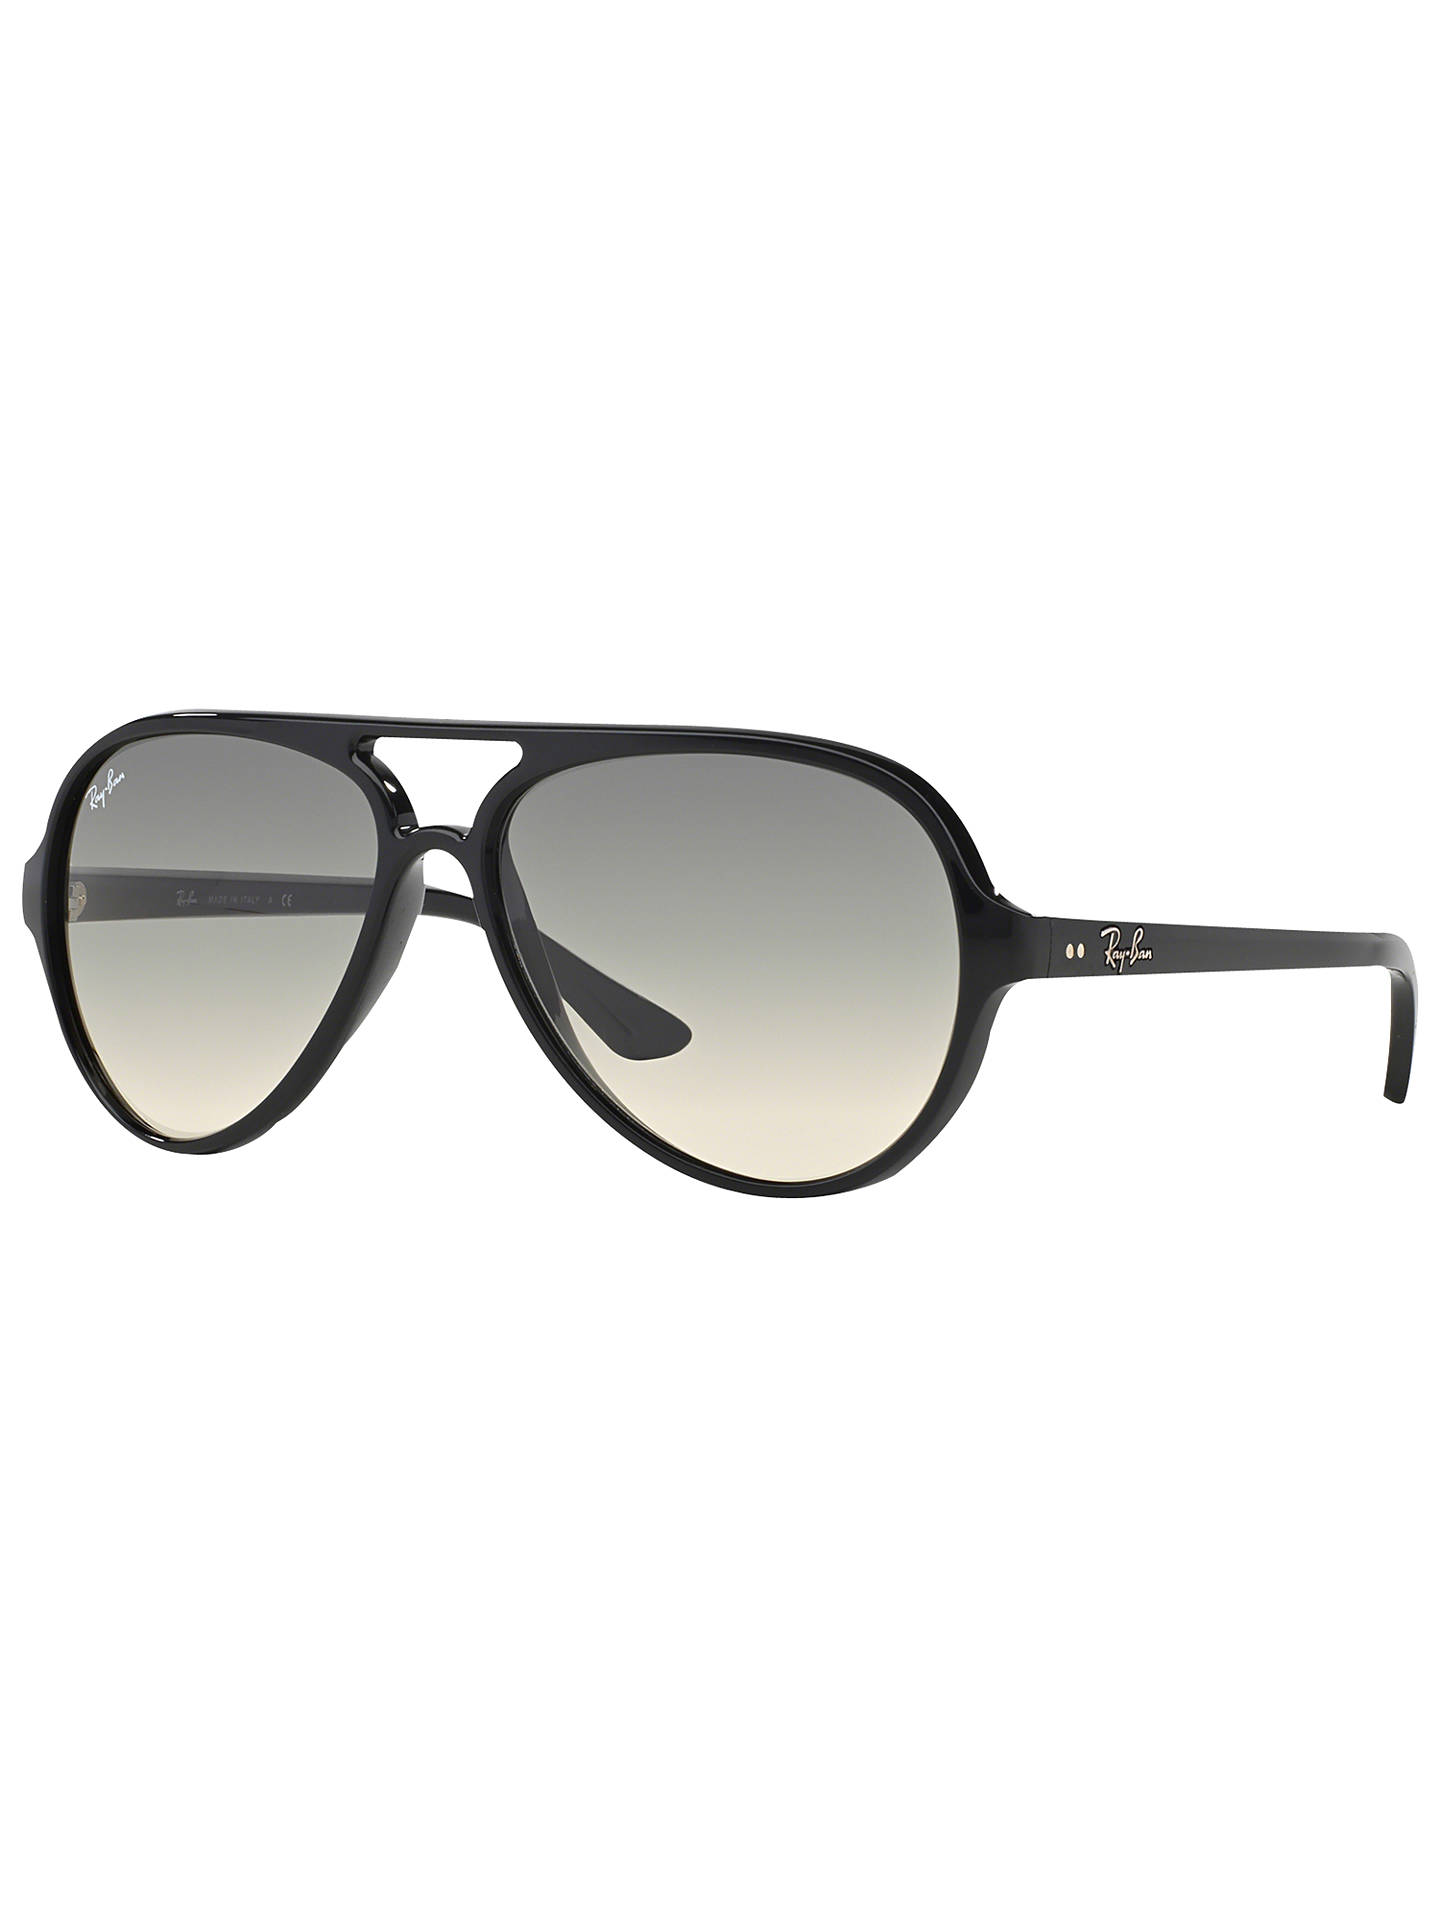 068b4adb9b BuyRay-Ban RB4125 Cats 5000 Aviator Sunglasses